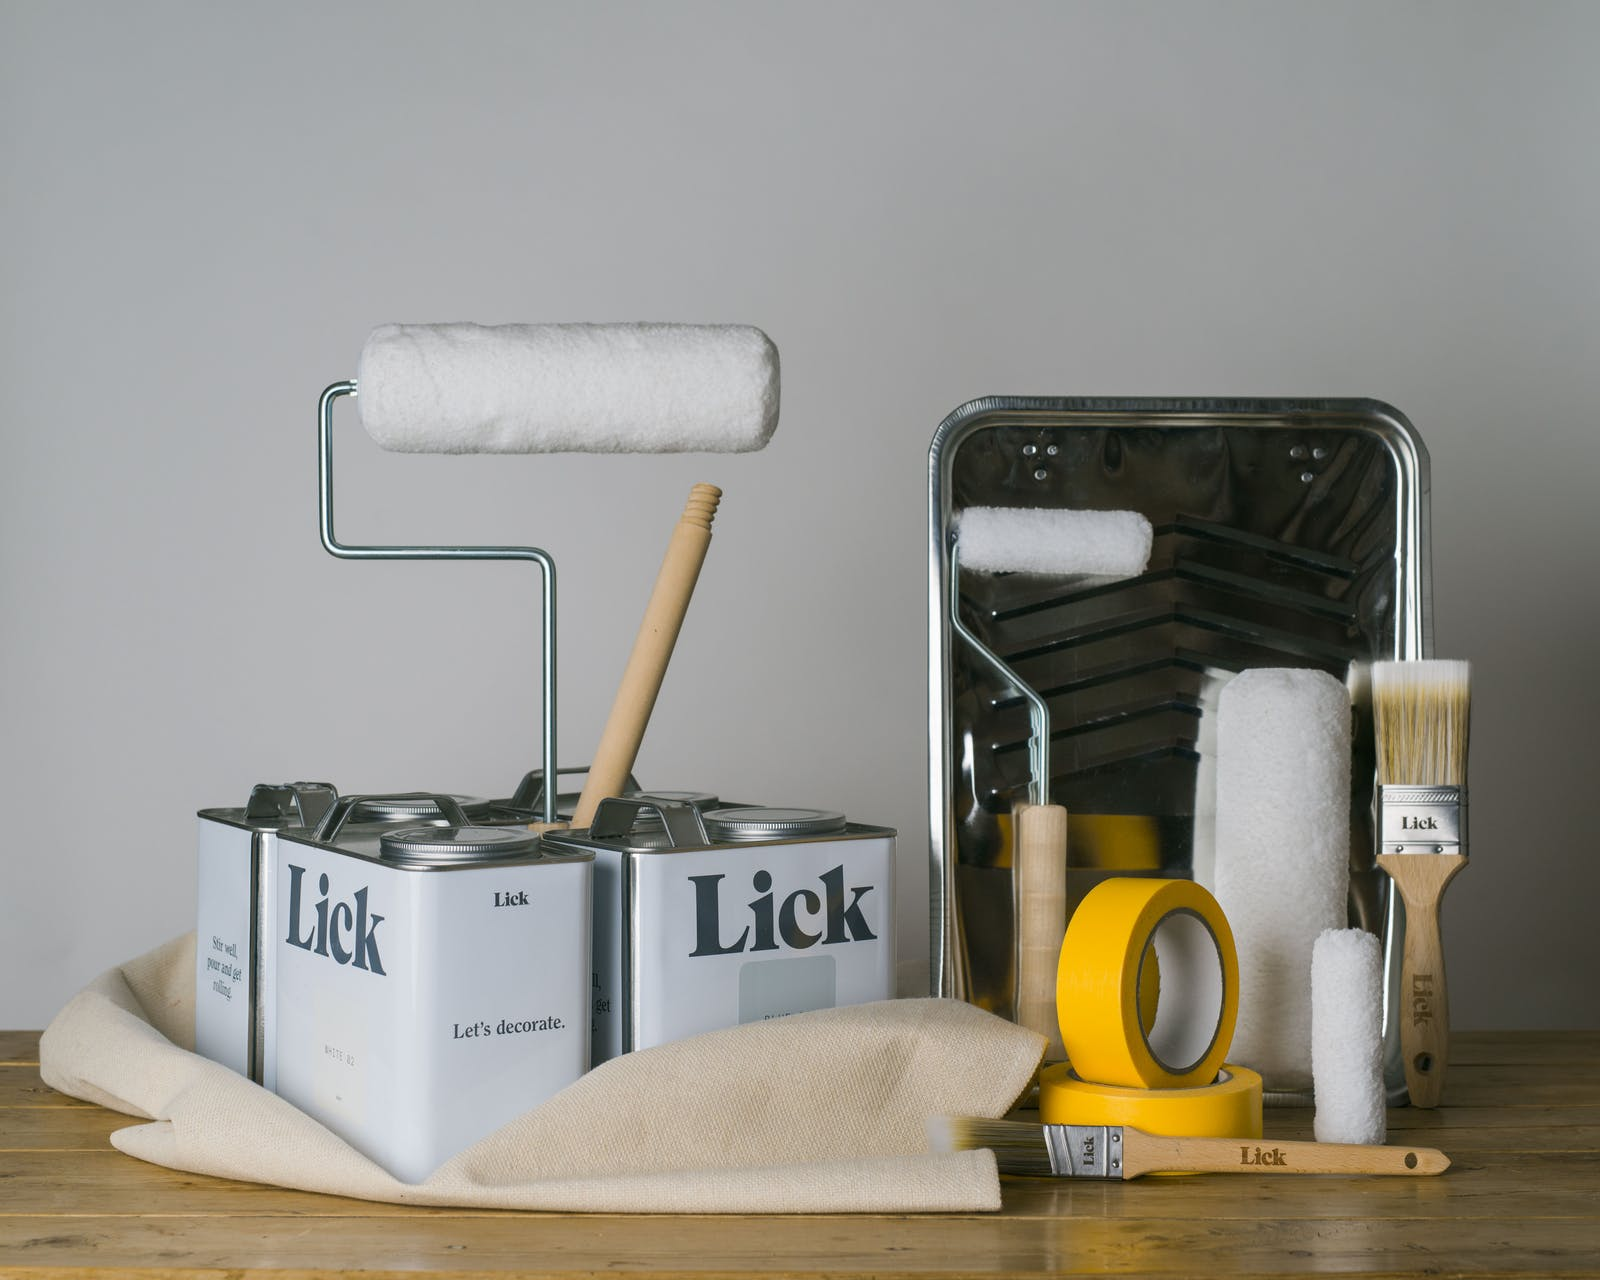 Lick multi room decorating kit including paint rollers, paint brushes, painters / masking tape, painting tray and extension pole